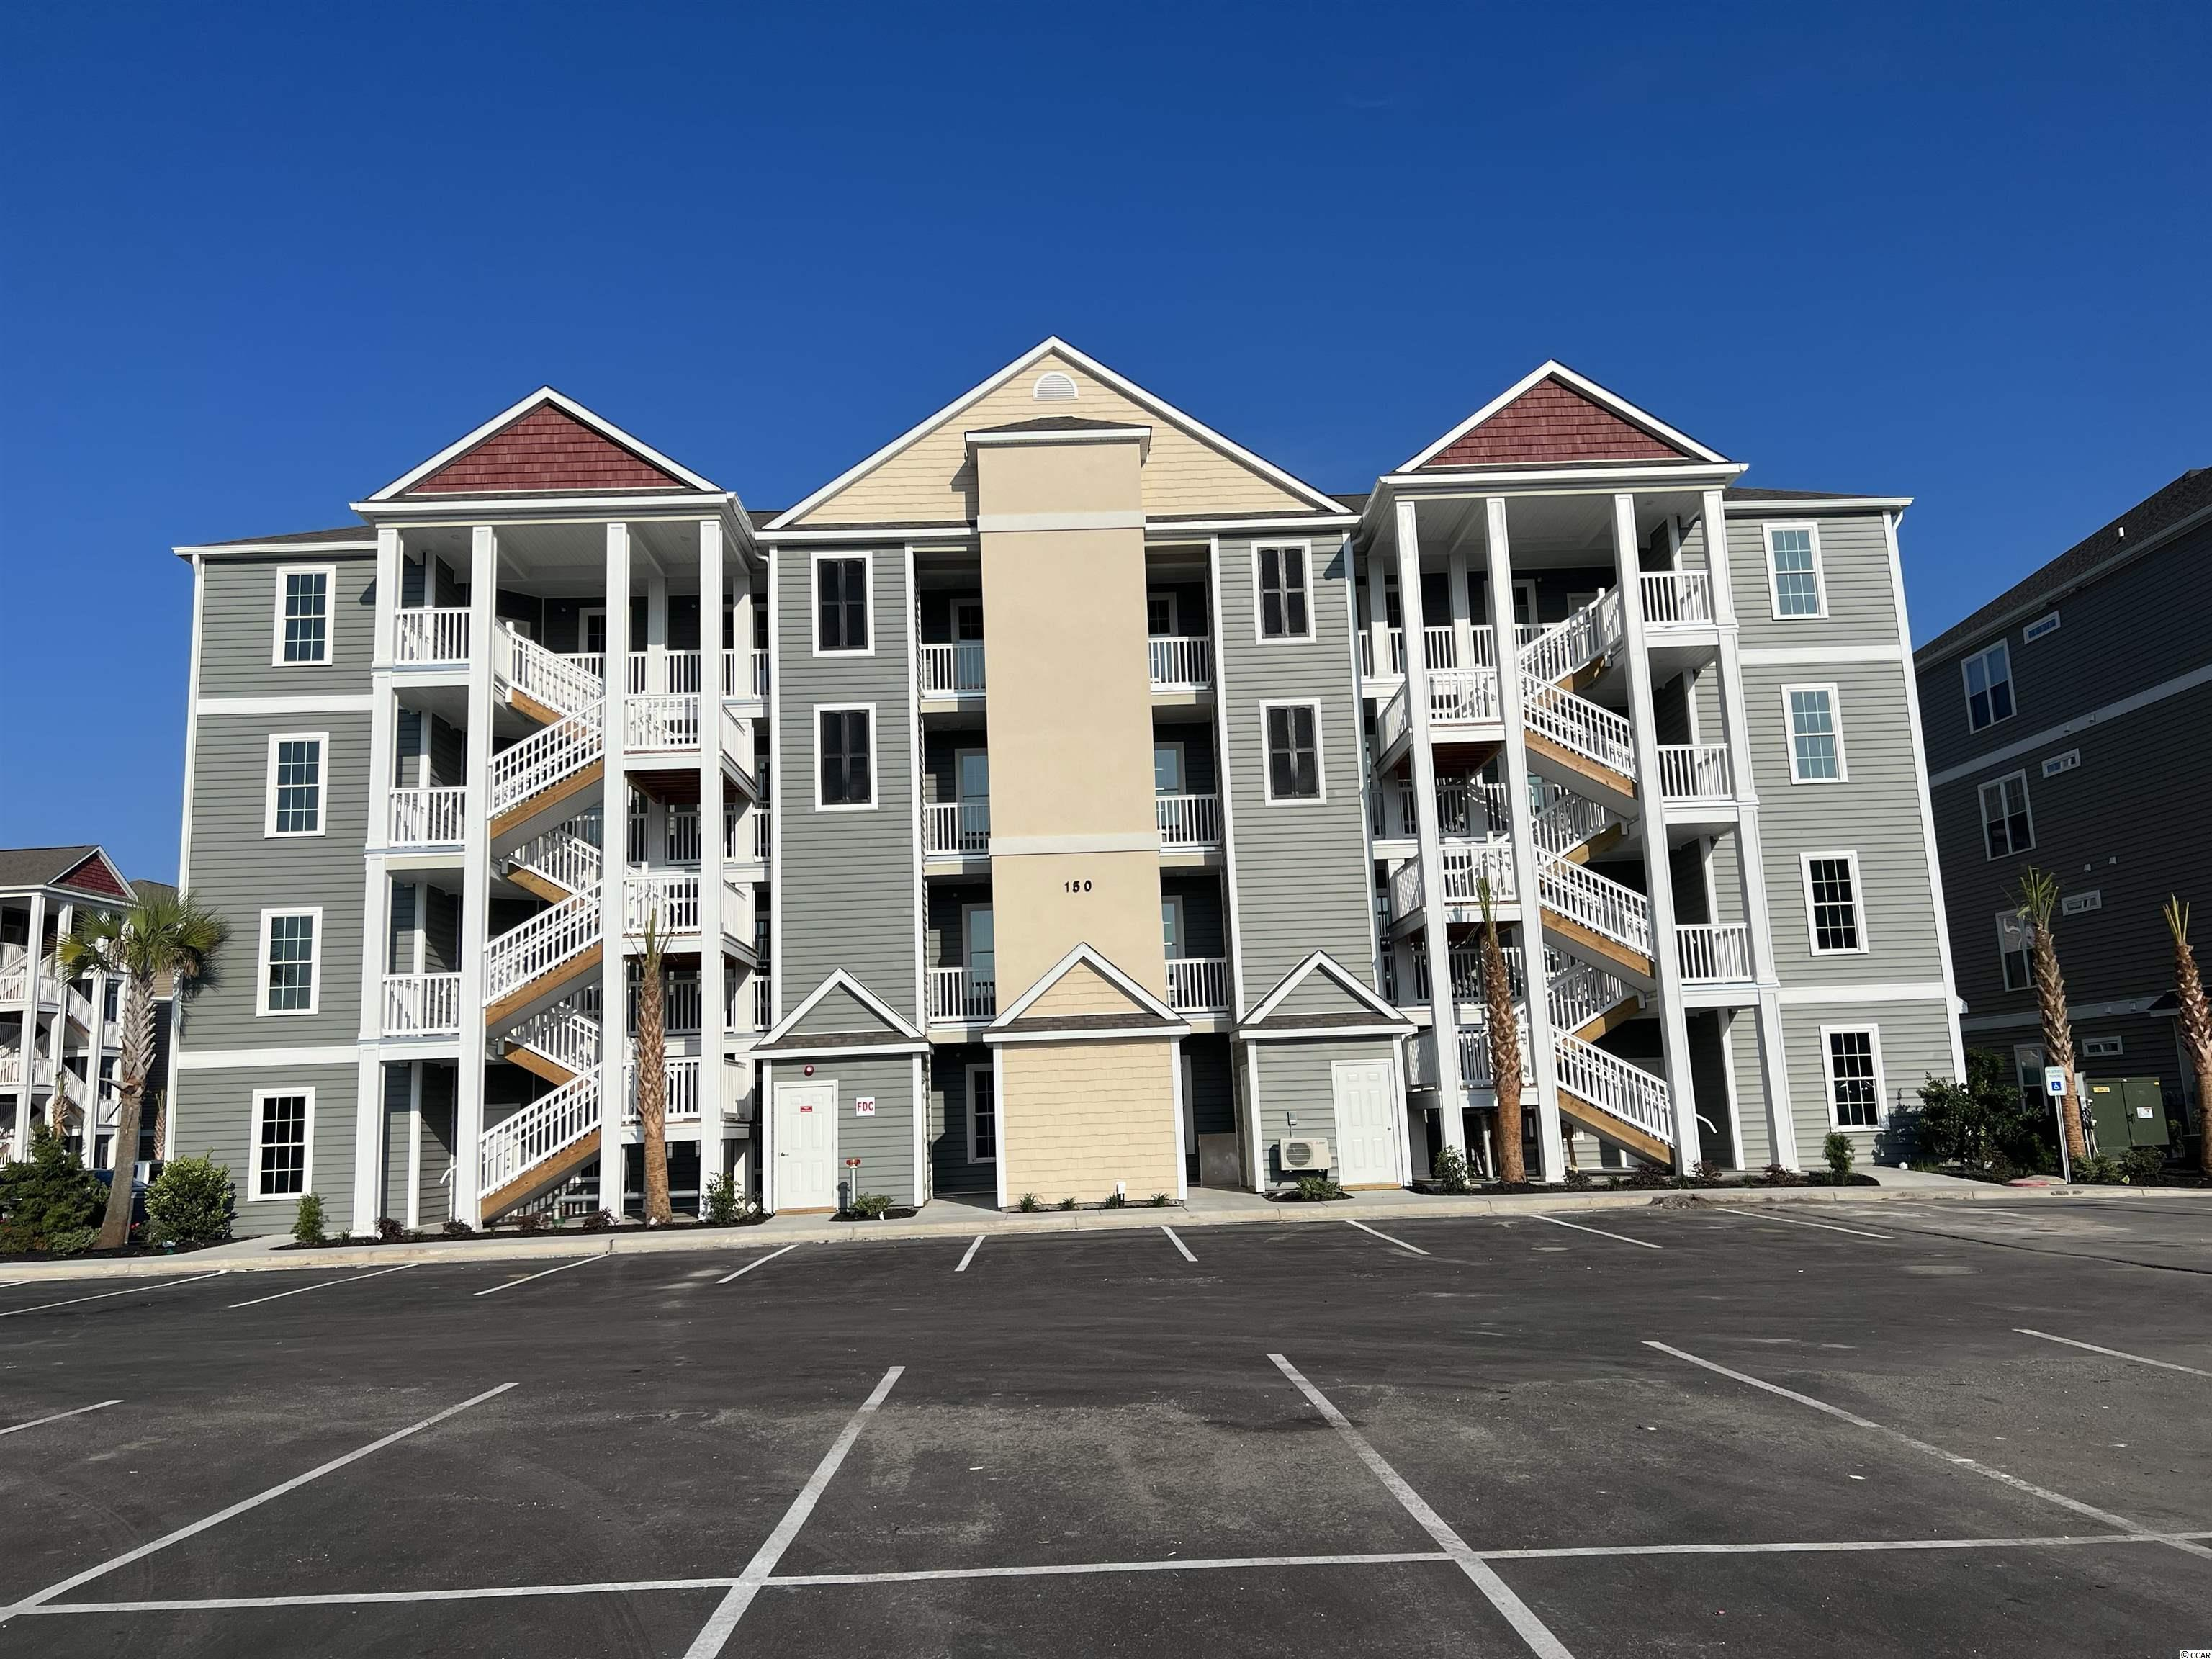 Located in one of the most successful condo developments in the Myrtle Beach area, this second floor interior unit is a 2 bedroom 2 bathroom beautiful condo in the very popular Queens Harbor! Building has an over-sized ELEVATOR to all floors, outside storage, split bedroom floor plans with entry to the Master Suite from the Family Room, 9' smooth ceilings and a screen porch. The location is superb with shopping, dining and recreation steps away. The amenity package includes a resort style swimming pool with club house and conveniently located picnic areas with grills.